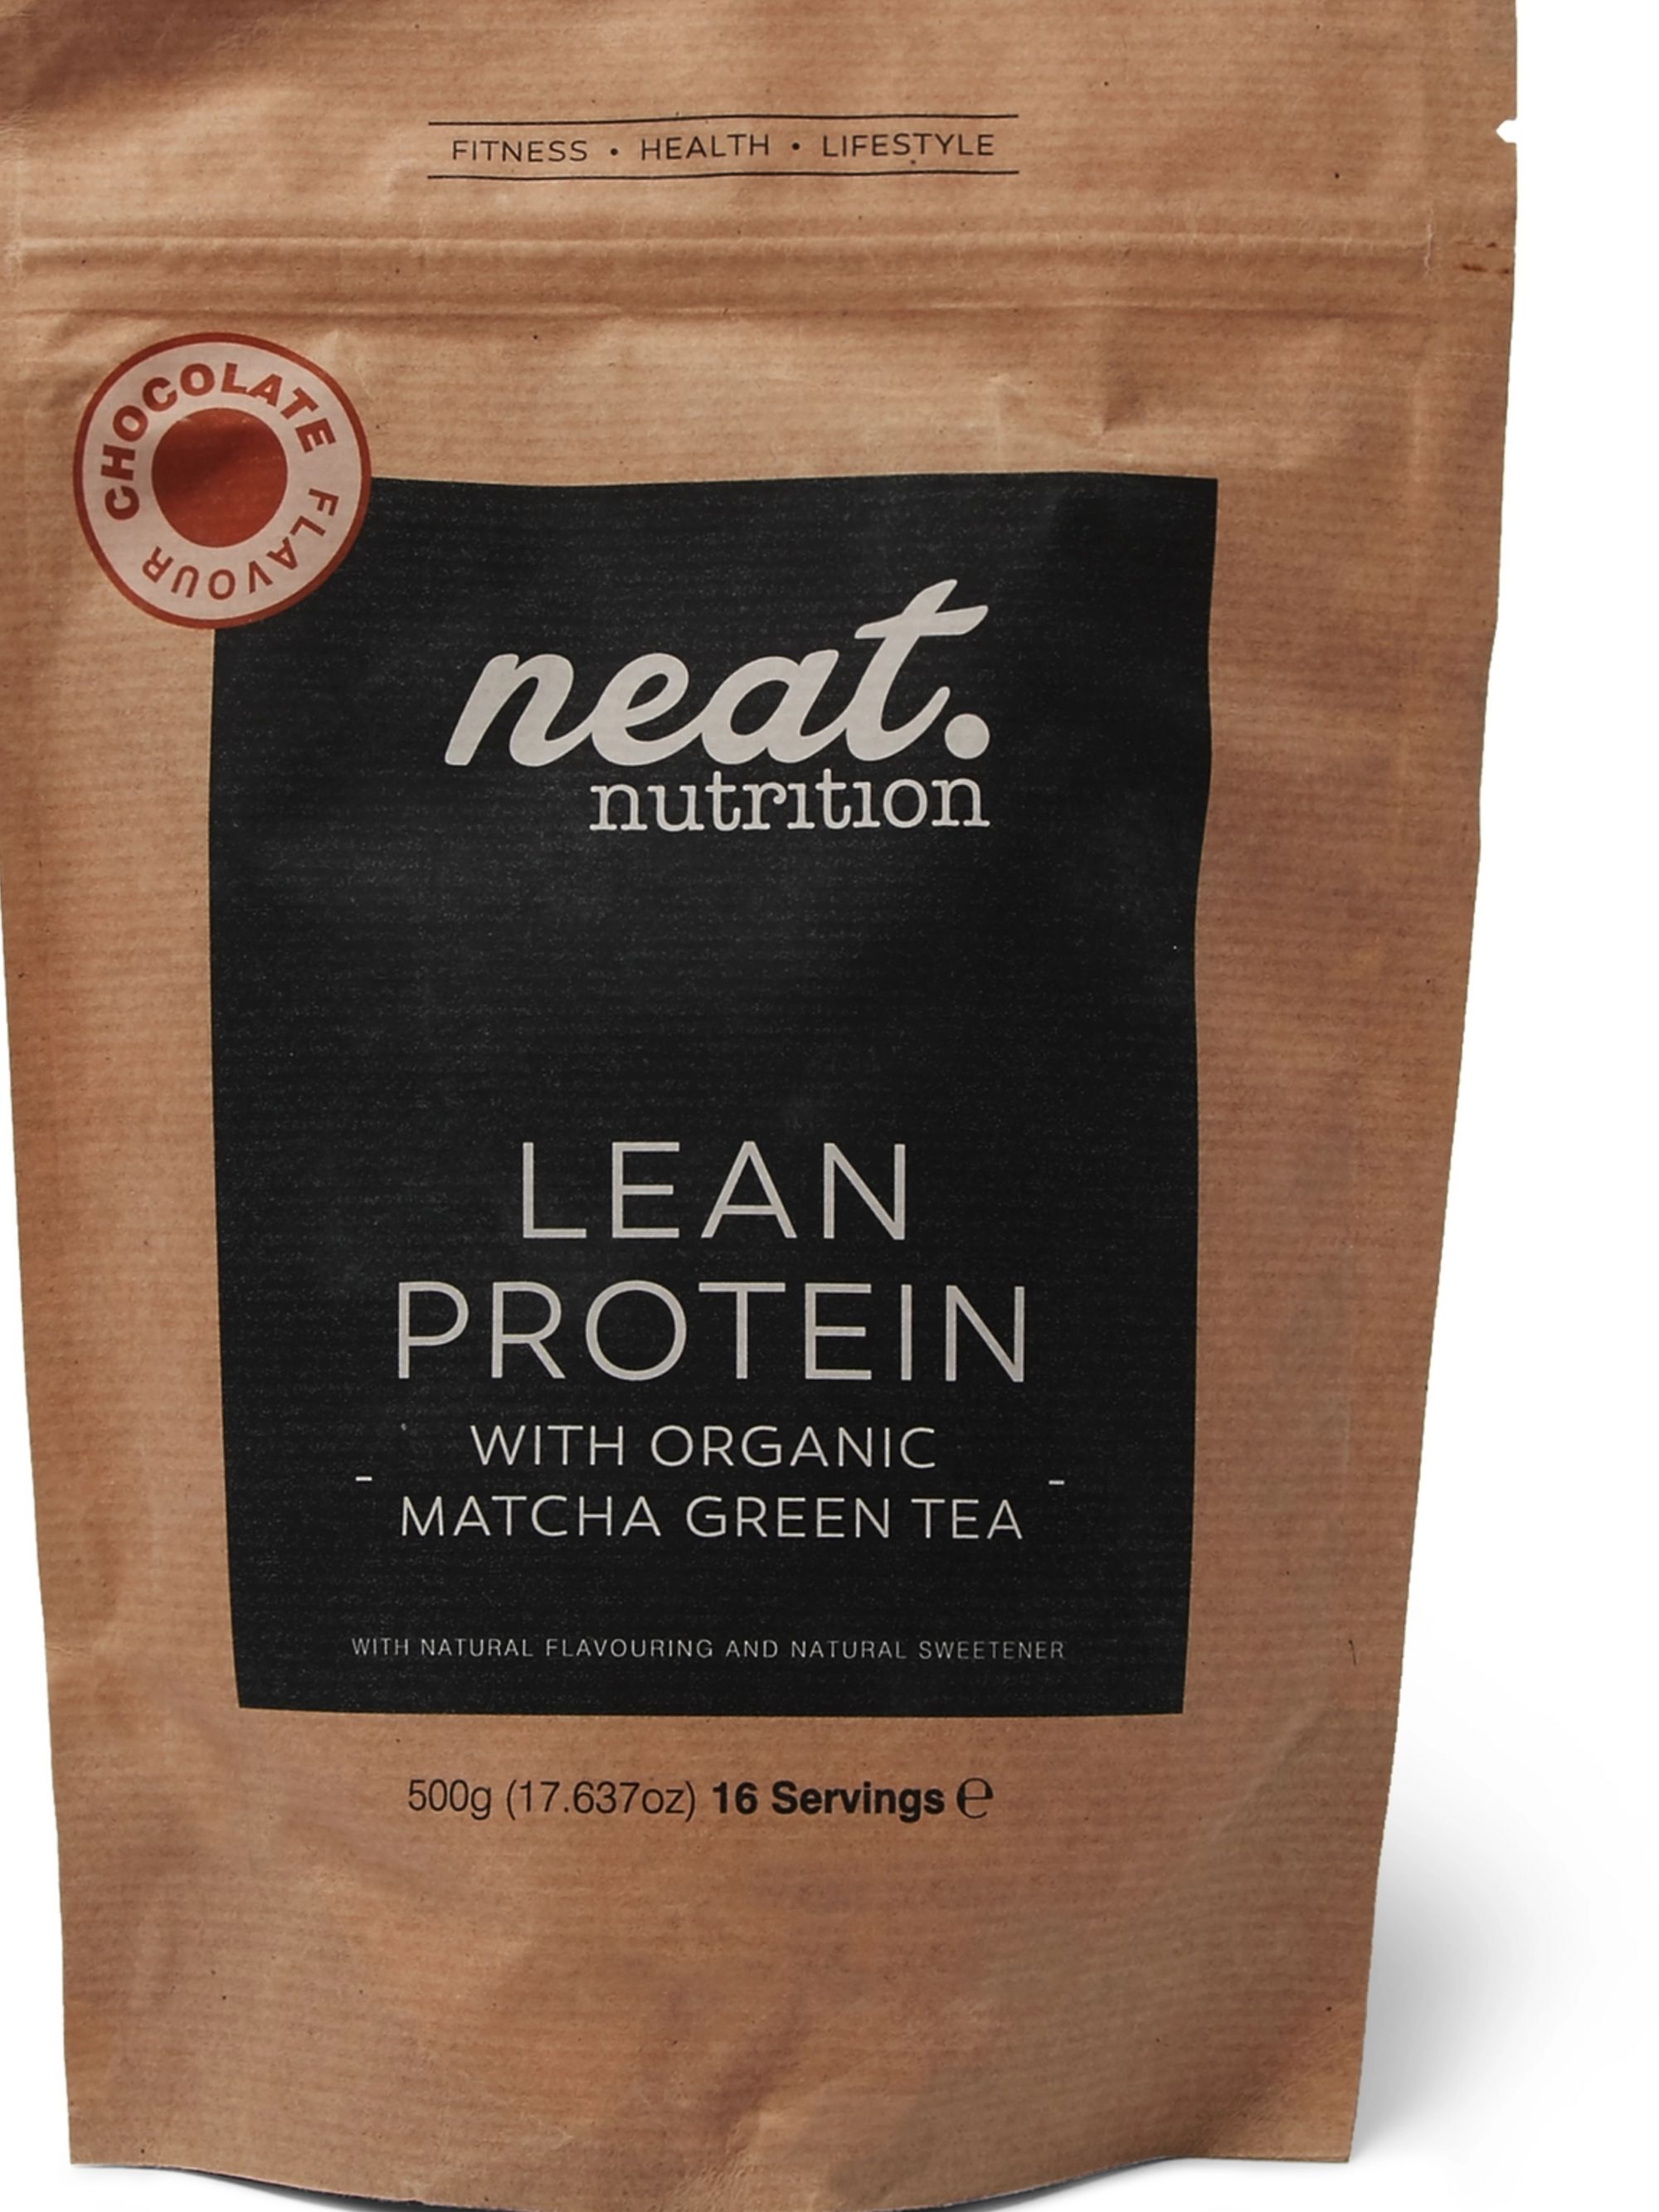 Neat Nutrition Lean Protein - Chocolate Flavour, 500g